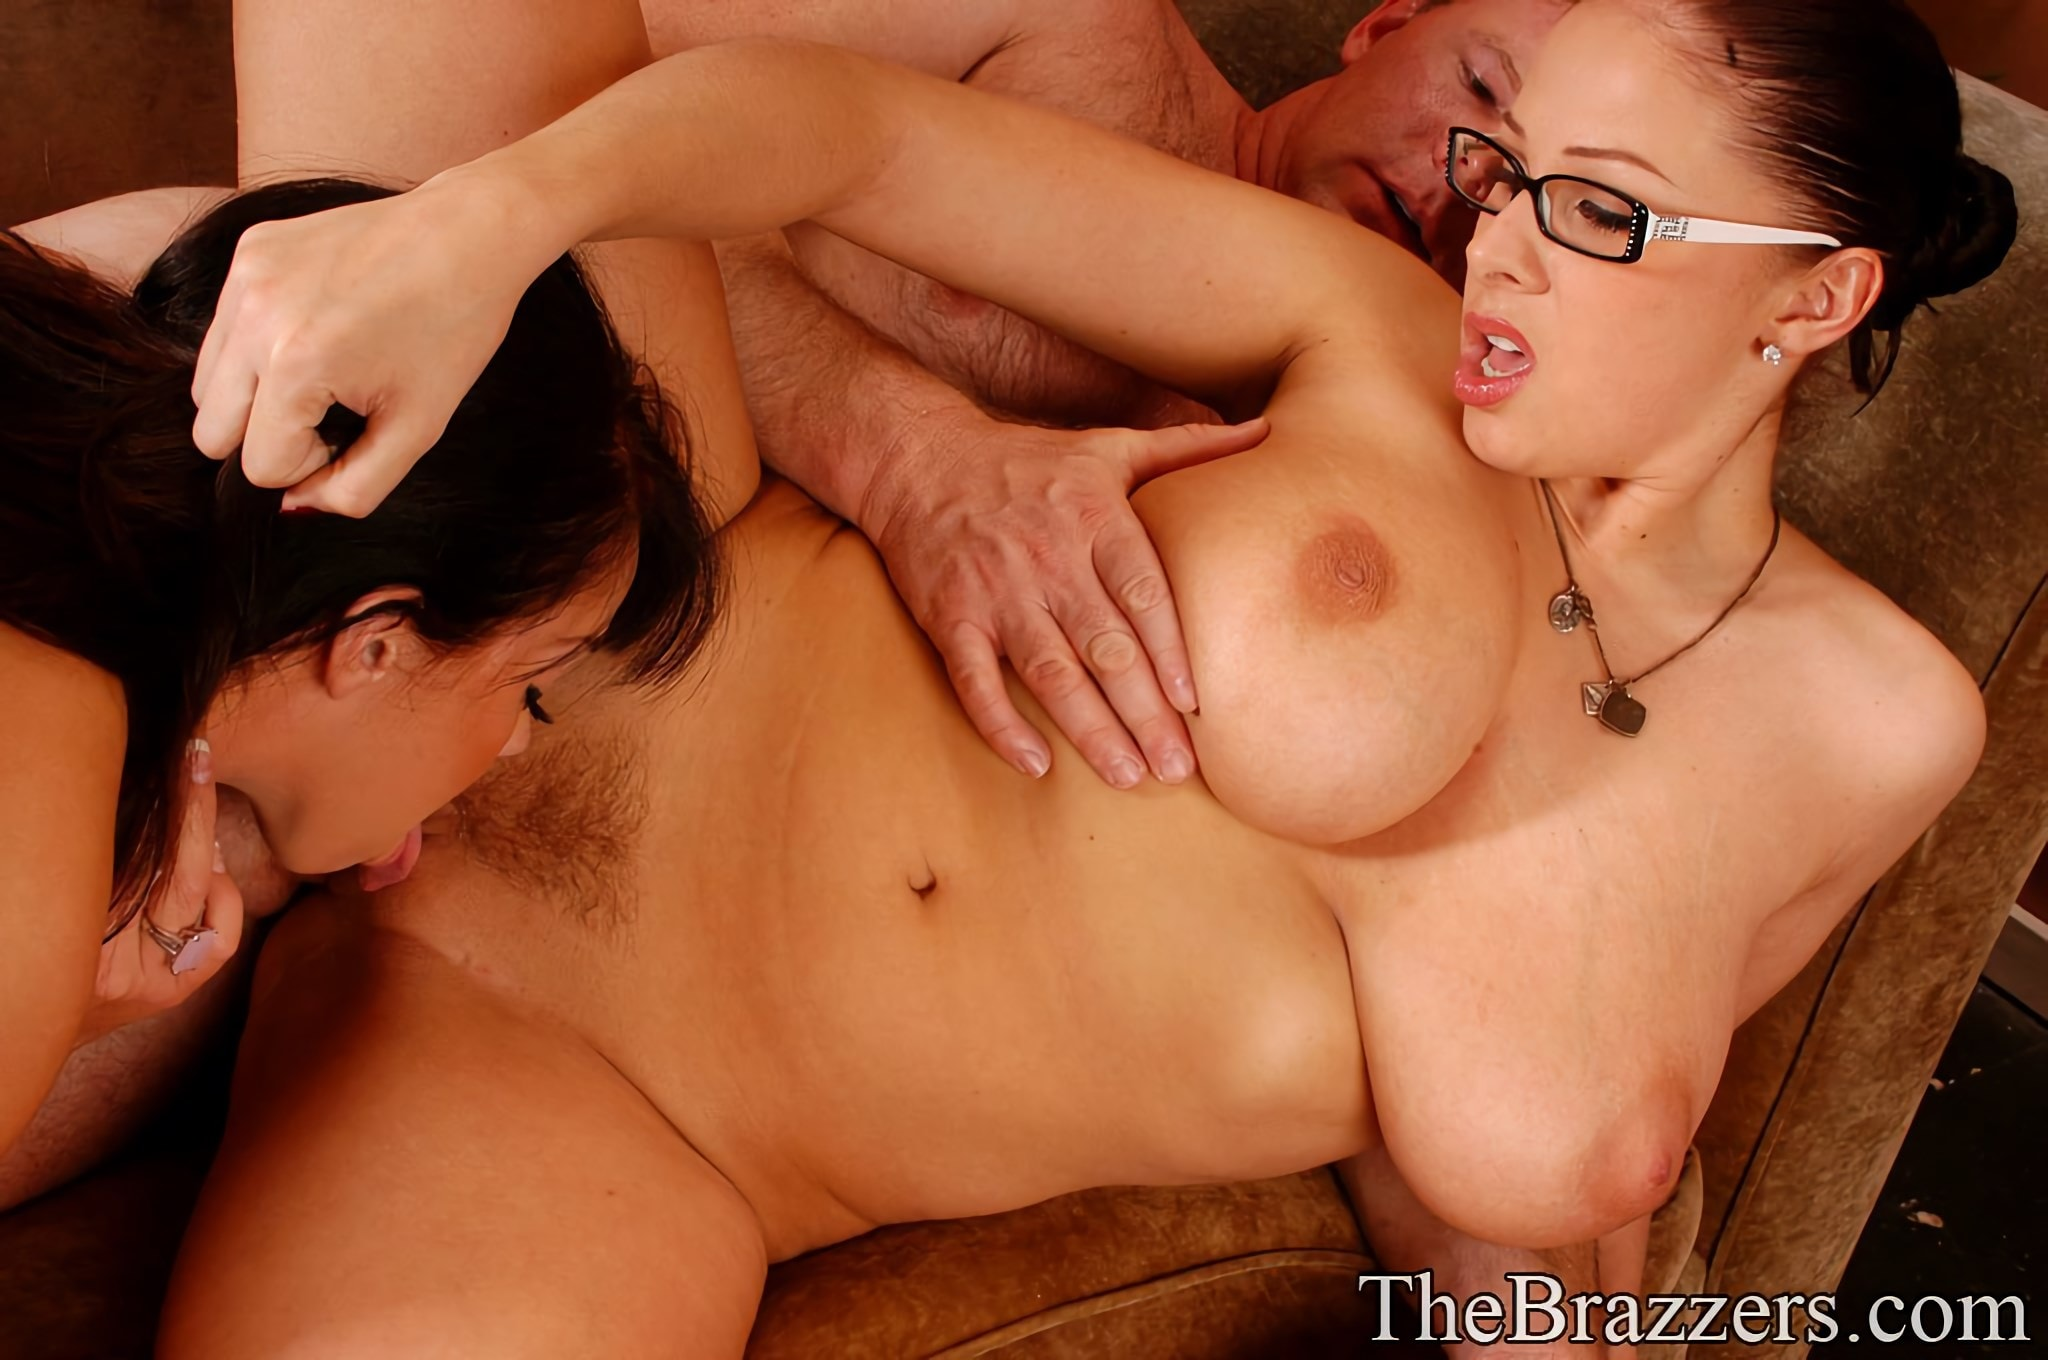 Gianna michaels sex pro adventures